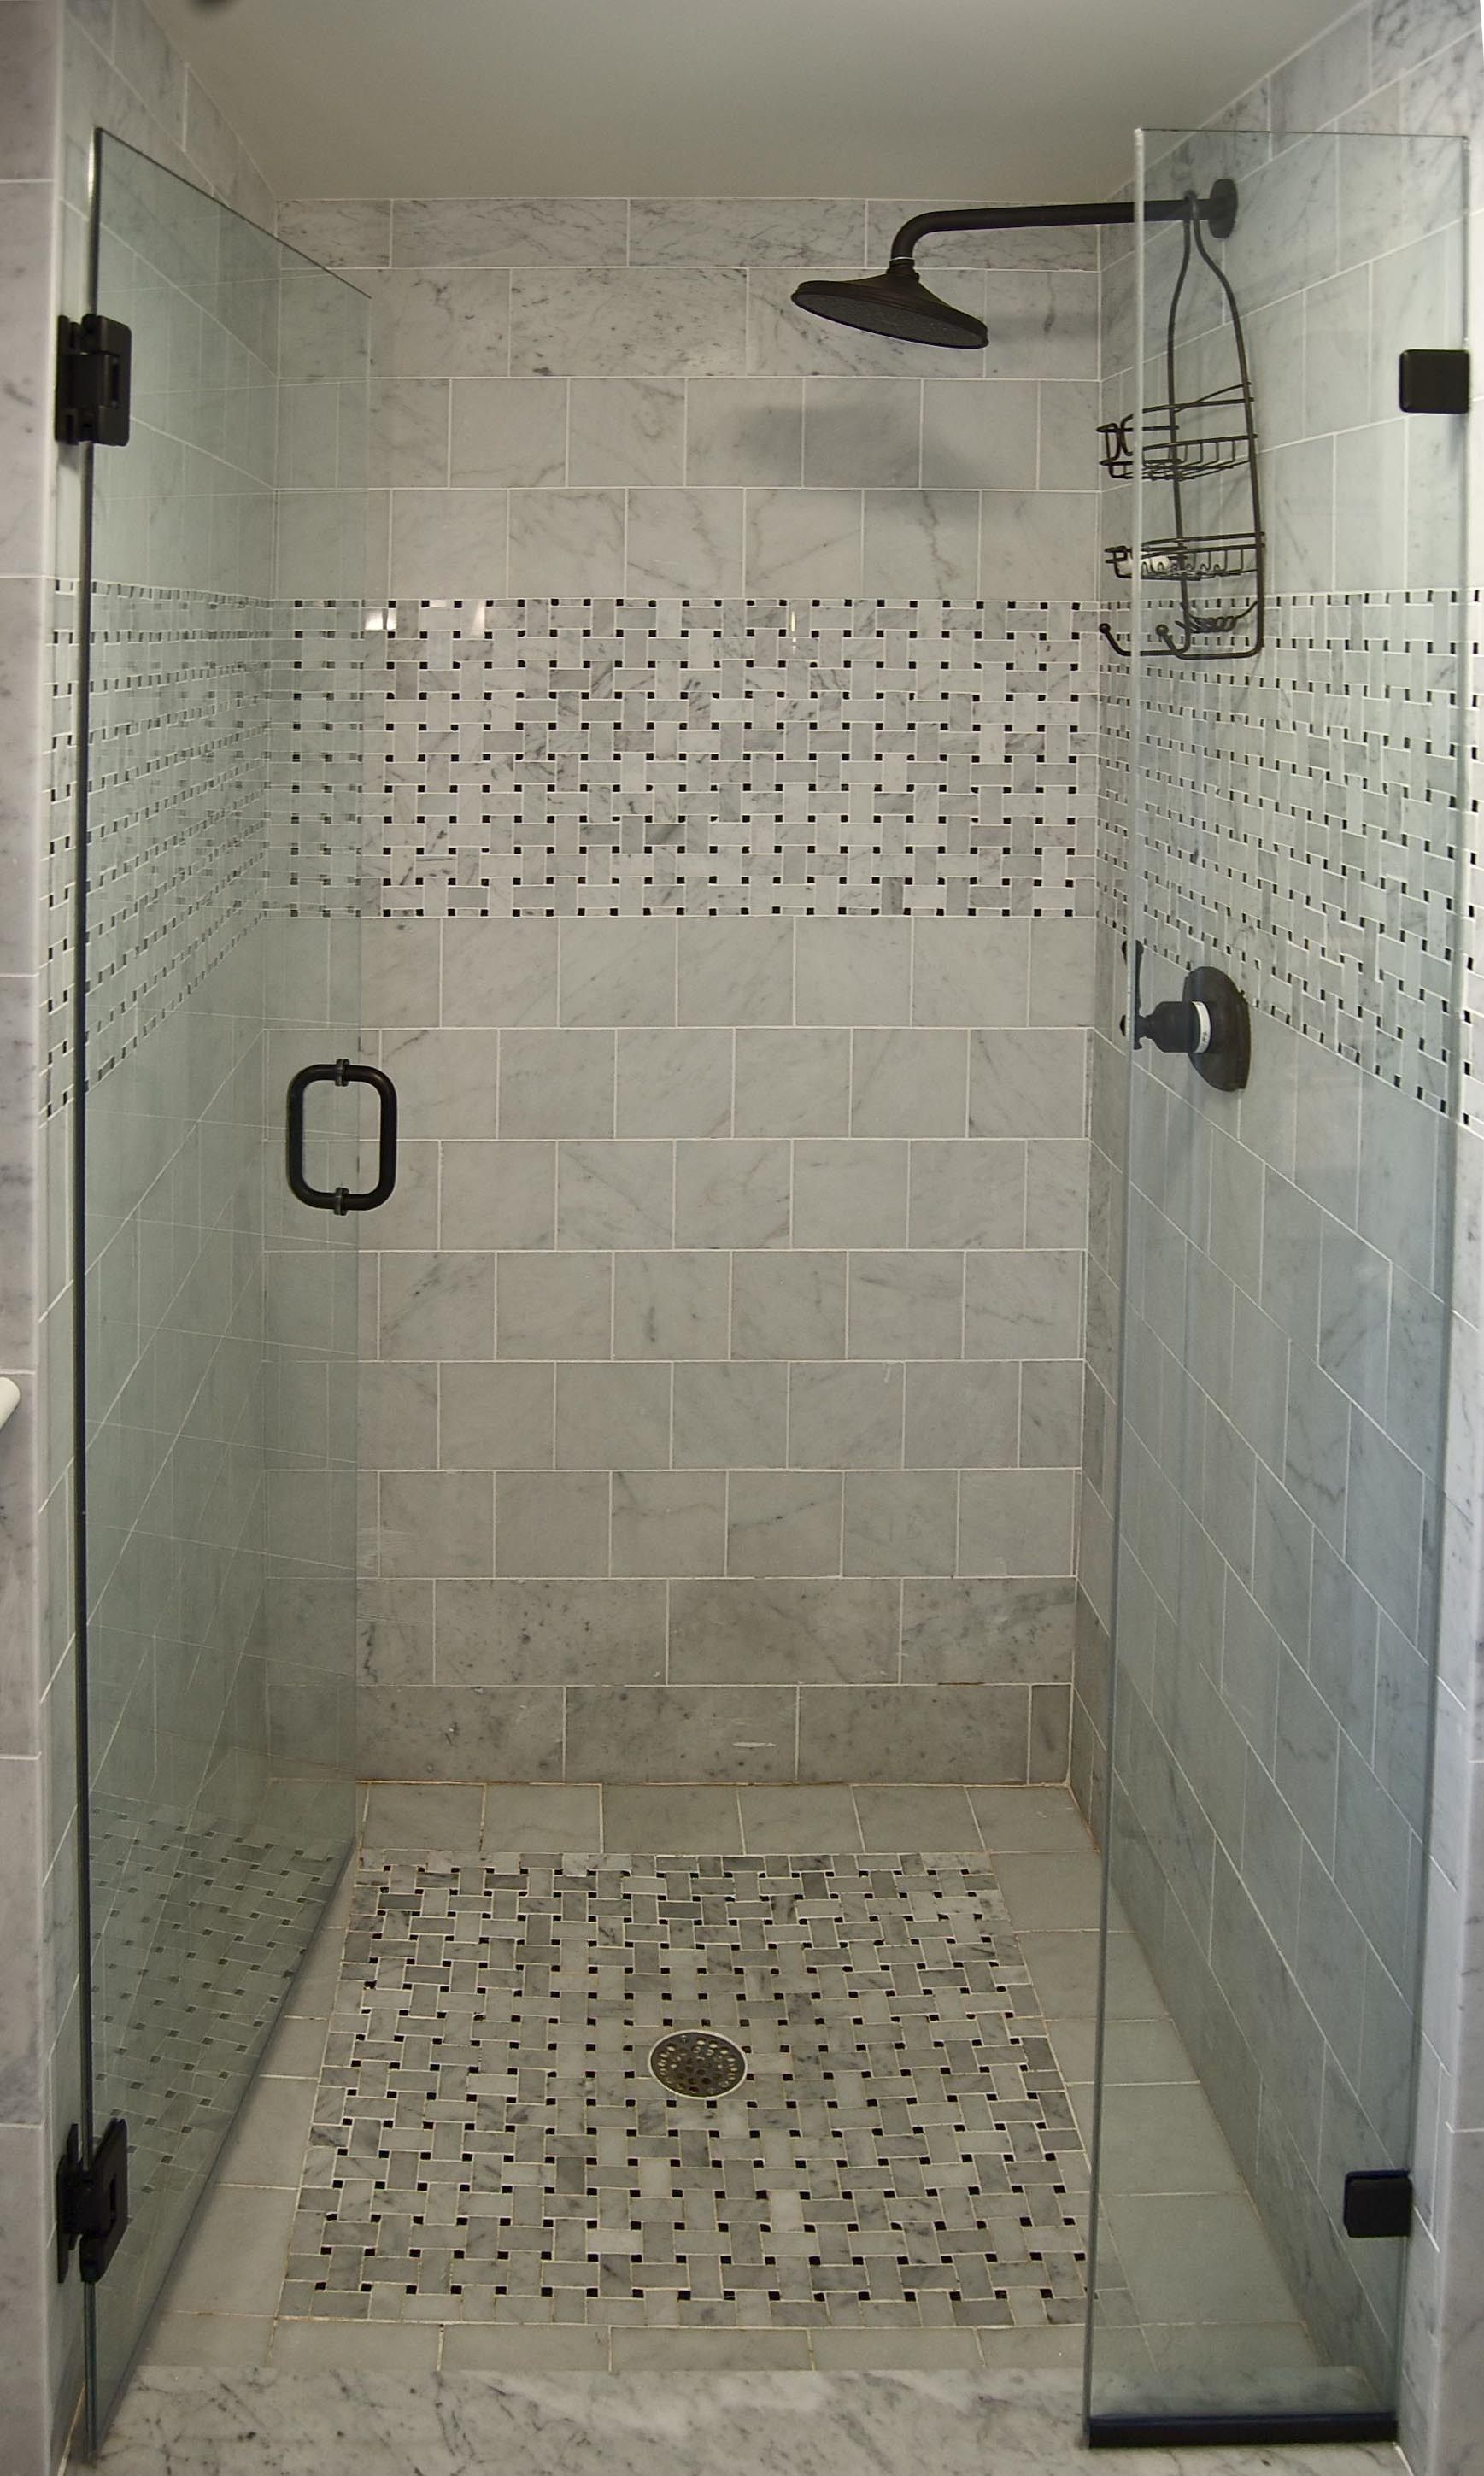 30 Shower Tile Ideas On A Budget Bathroom Shower Stalls Shower Remodel Bathroom Shower Tile